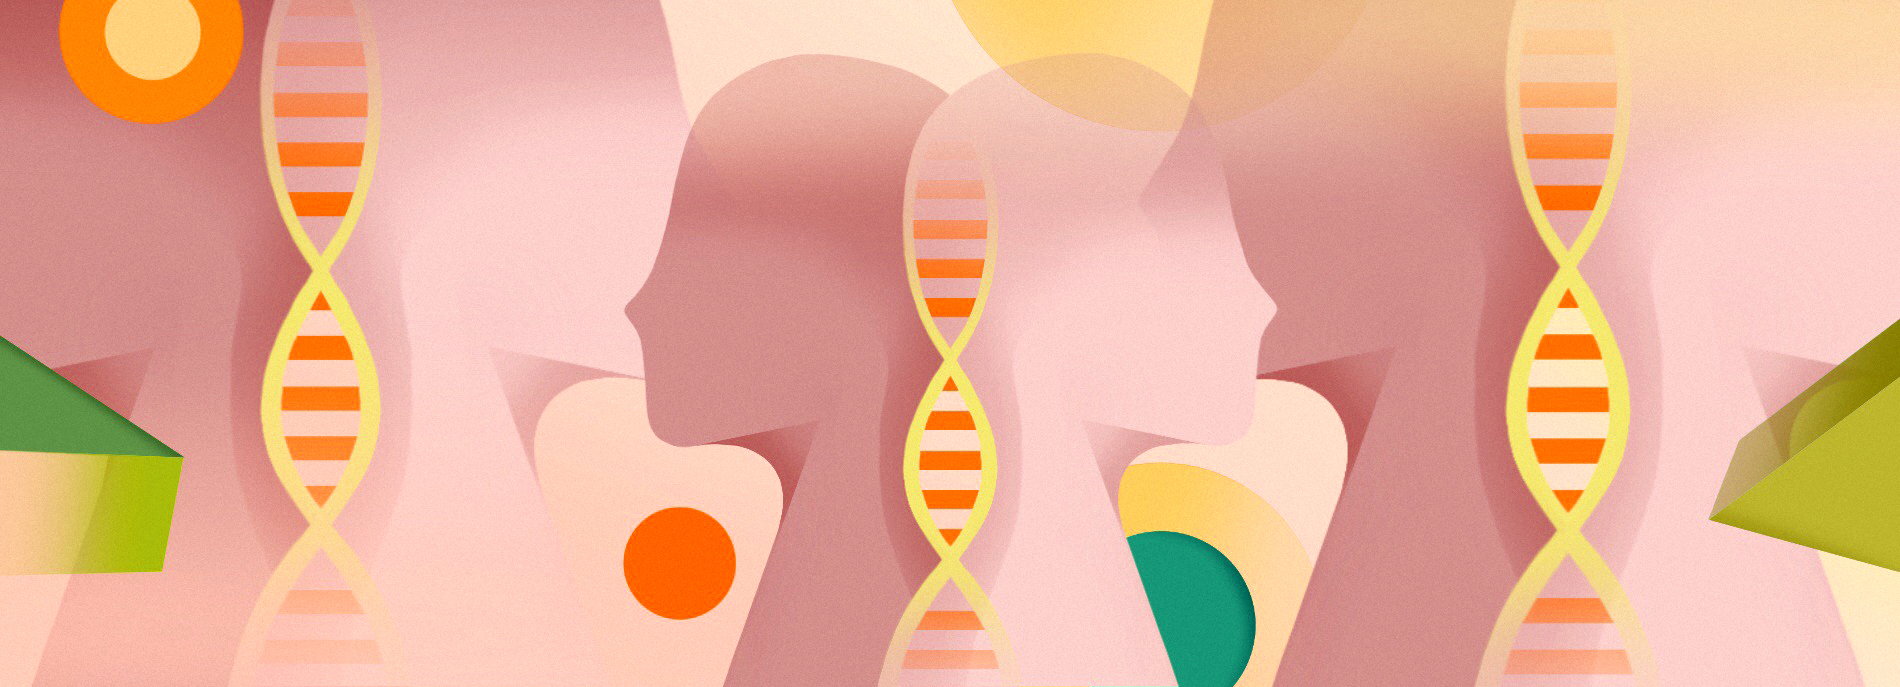 Devising Spectrum Of Tests For >> Special Reports Spectrum Autism Research News